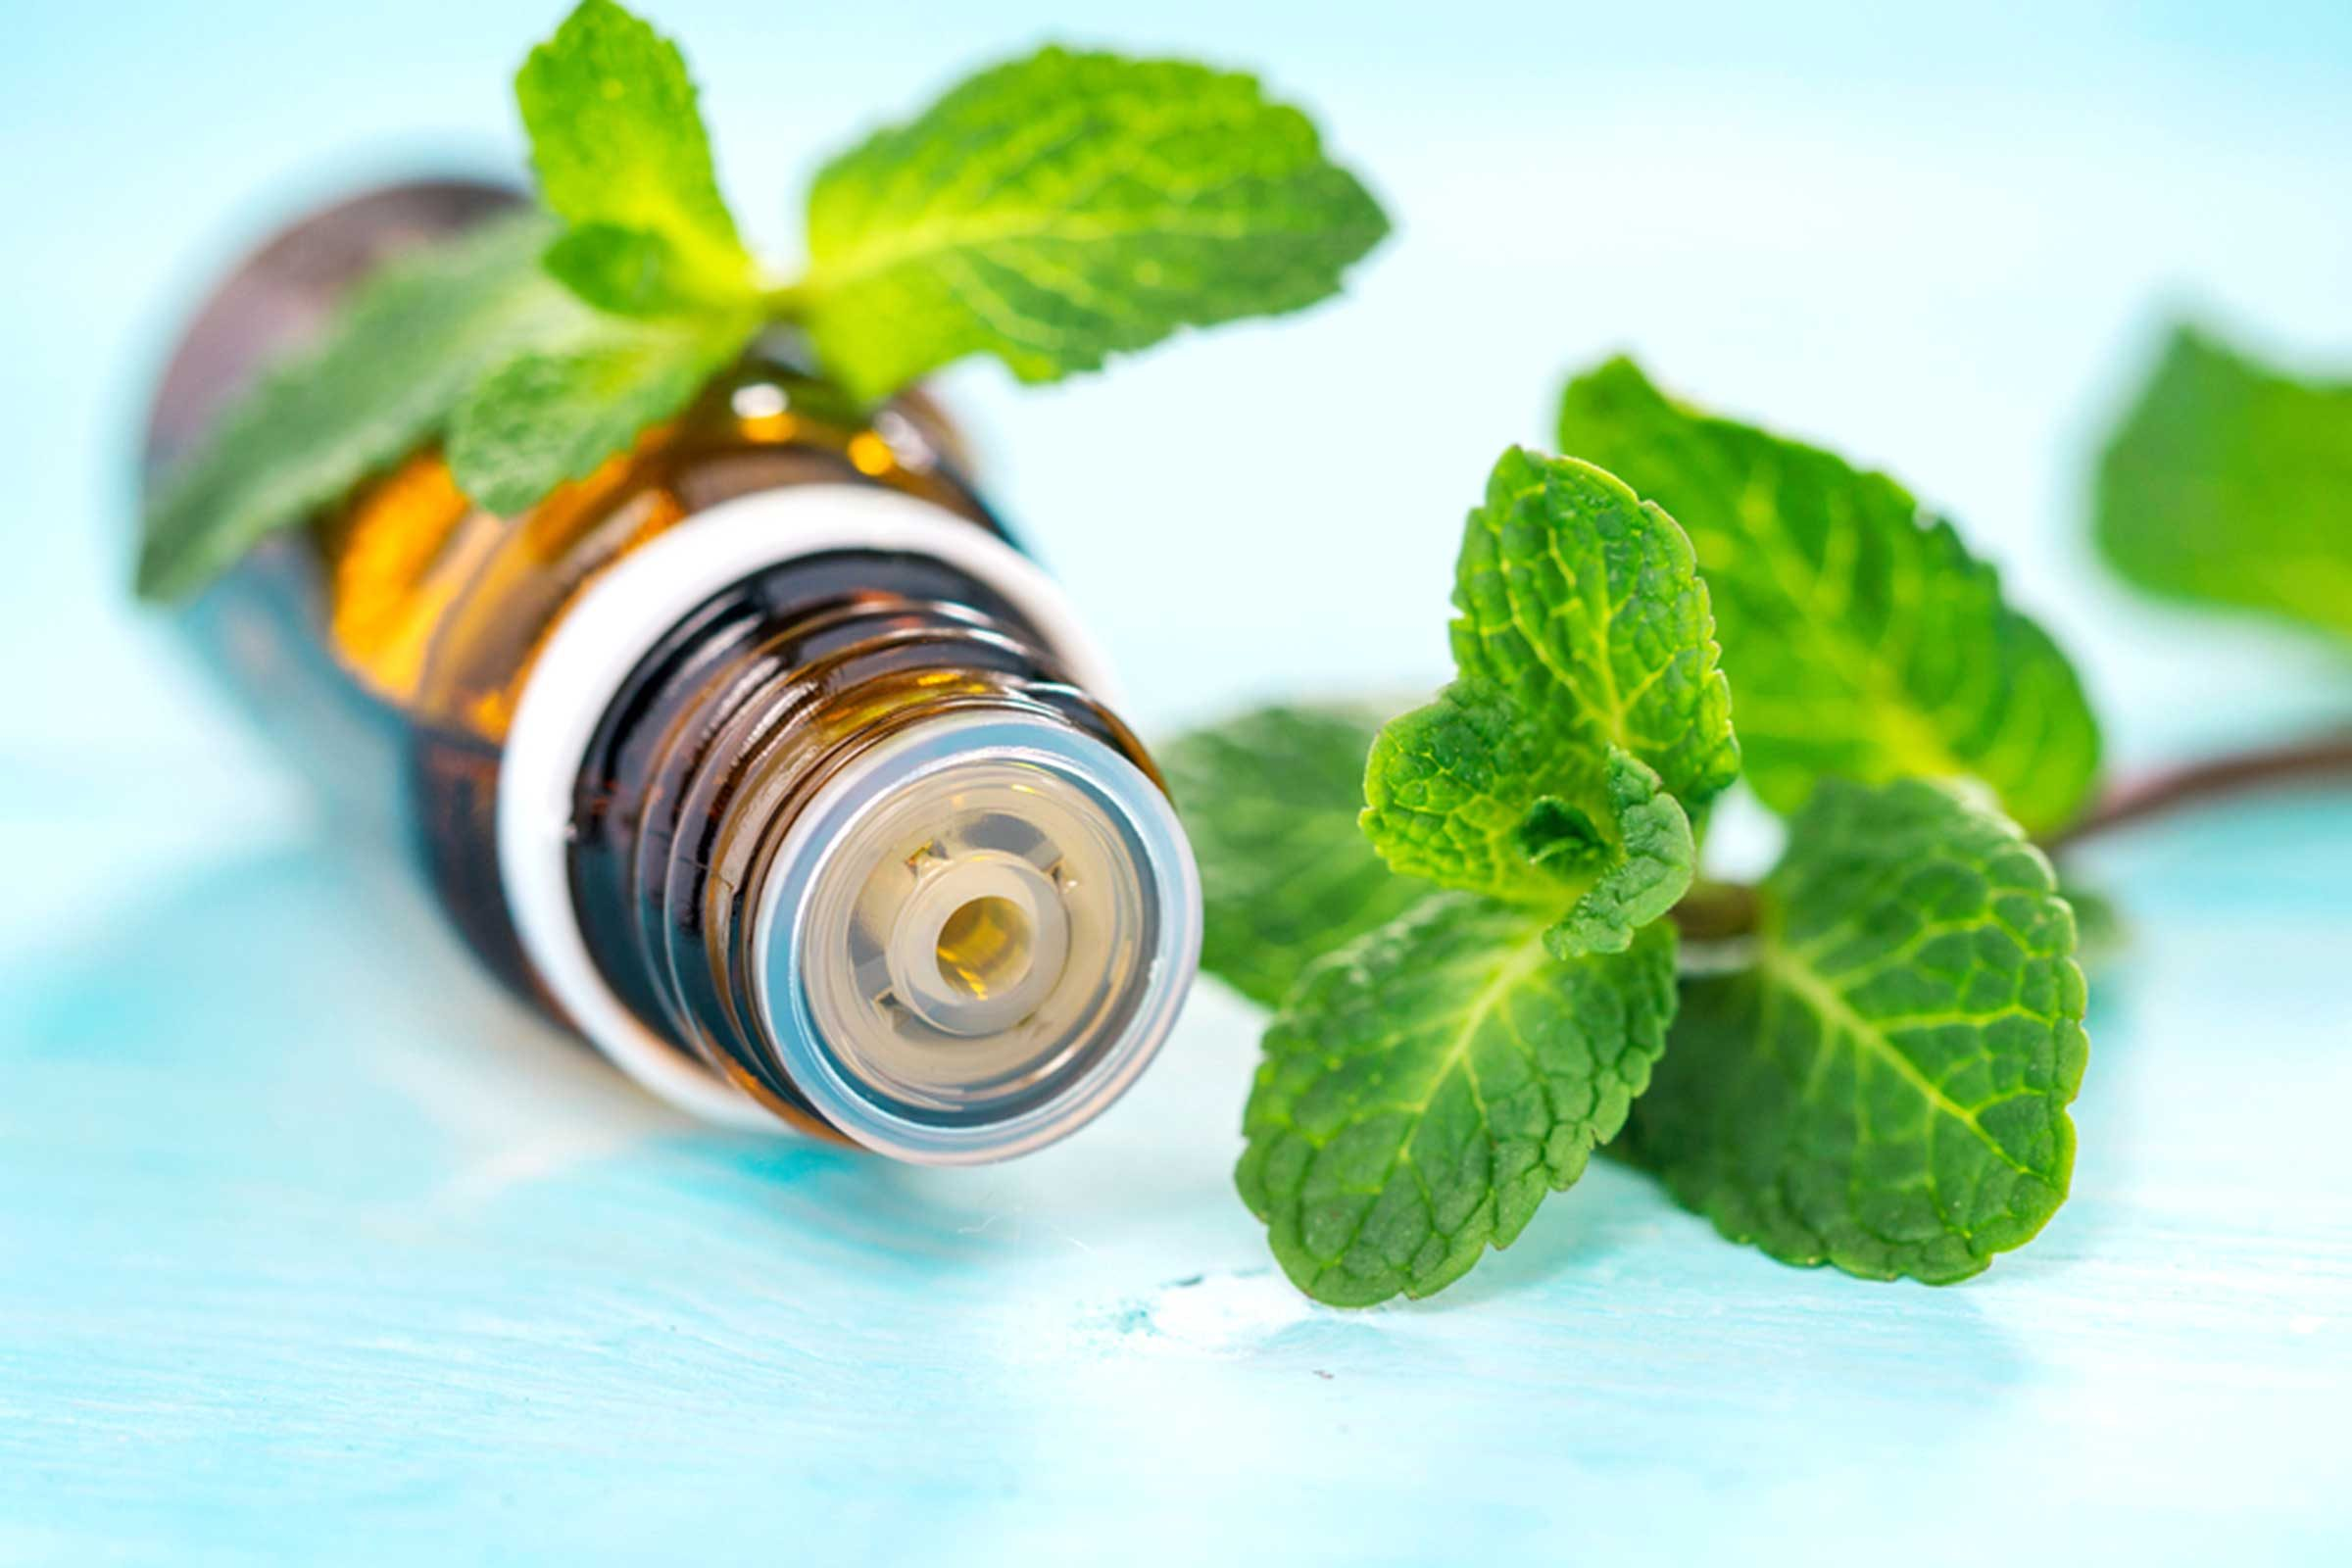 essential oil bottle on its side with mint leaves on a light blue surface